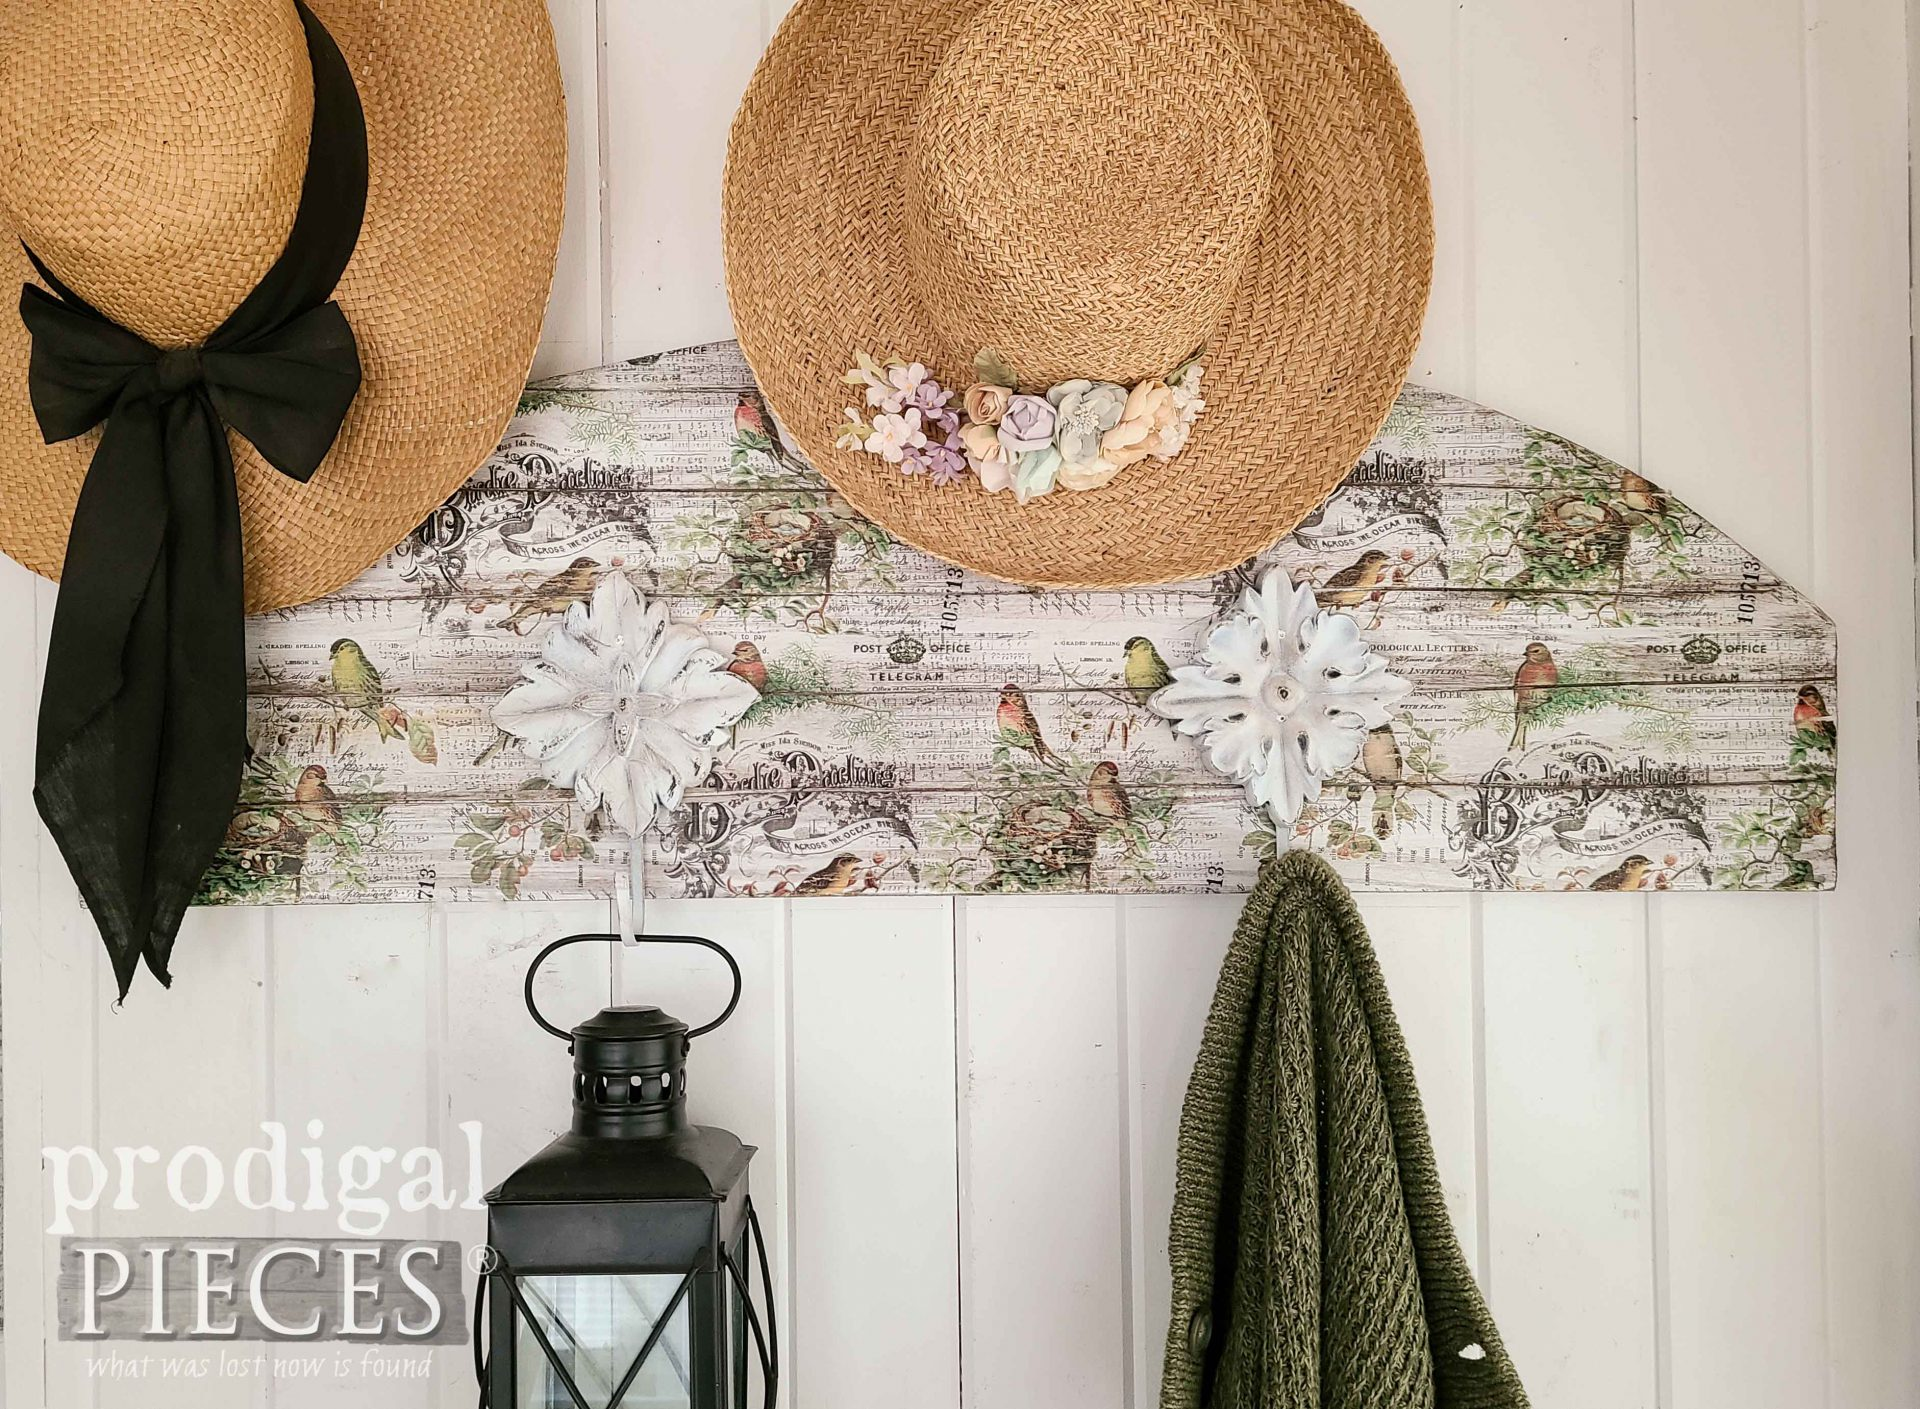 Cottage Style DIY Decoupage Coat Rack with Birds and Typography by Larissa of Prodigal Pieces | prodigalpieces.com #prodigalpieces #diy #home #homedecor #cottage